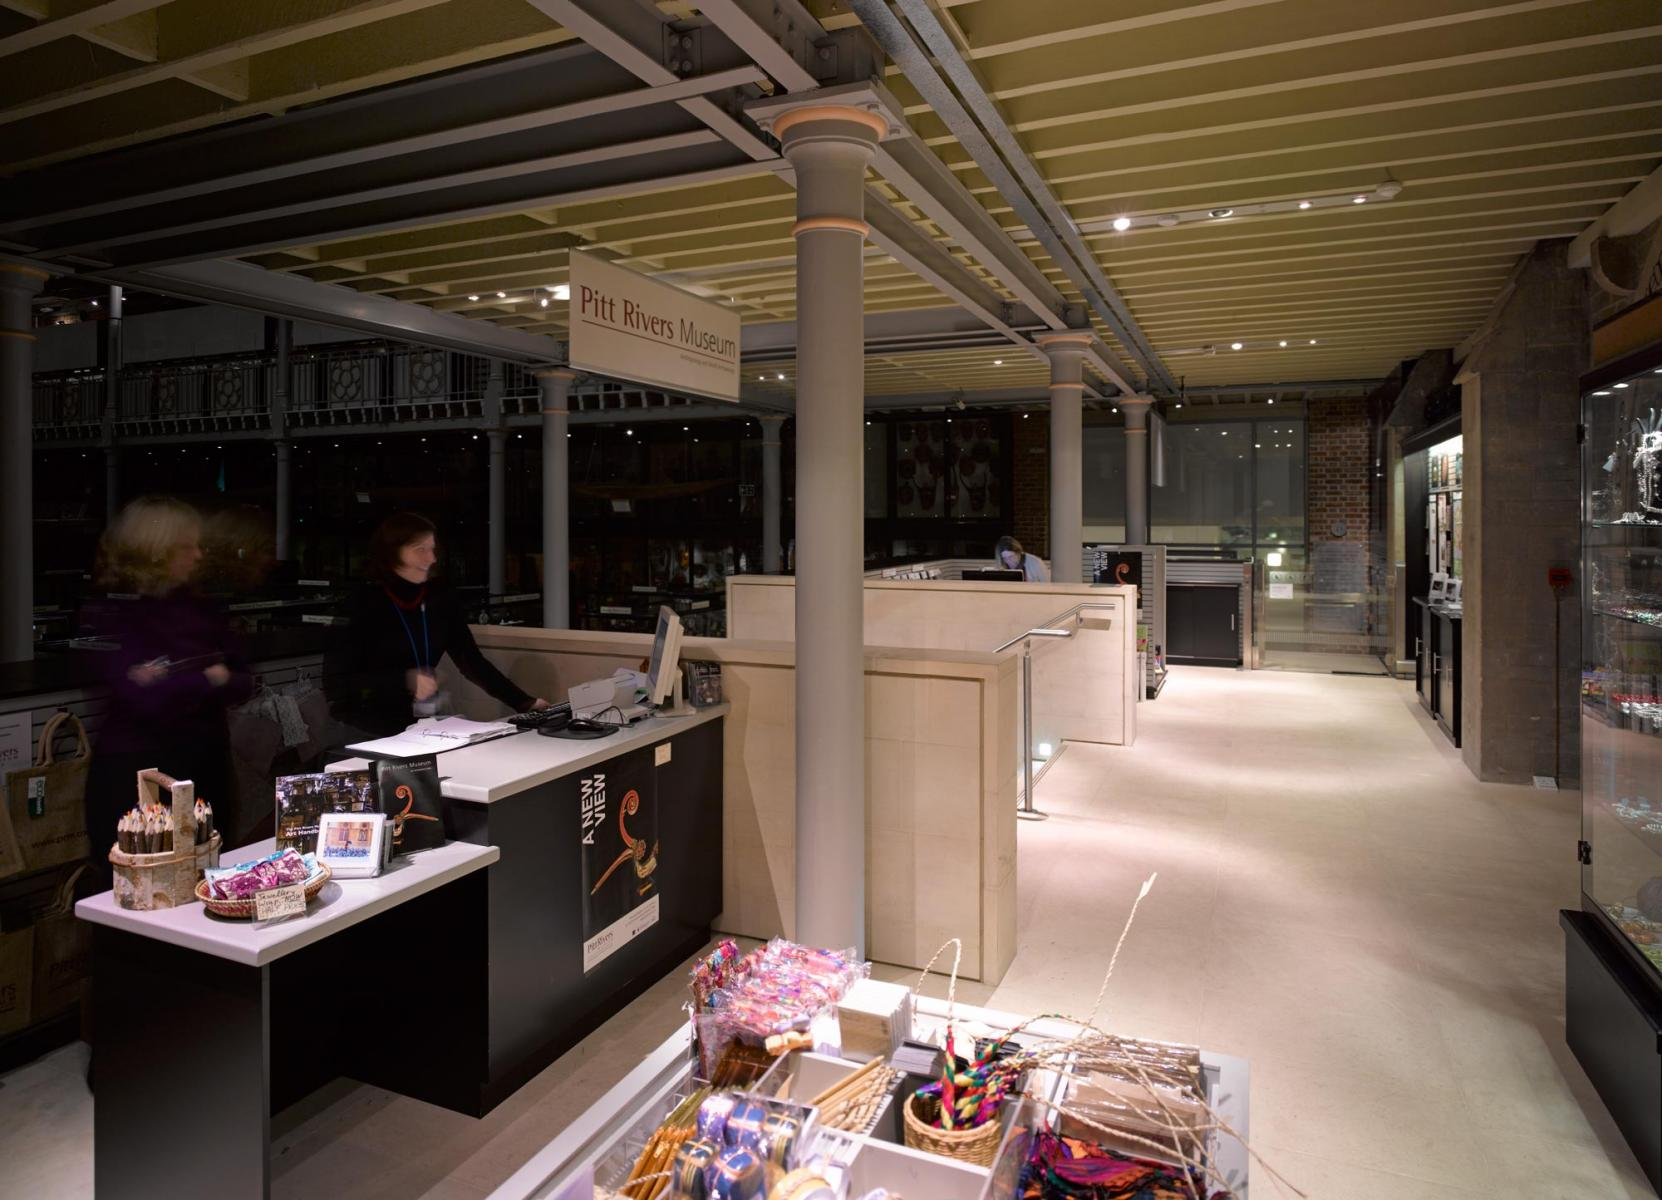 Pitt Rivers Museum Main Entrance and Refurbishment - Shop view